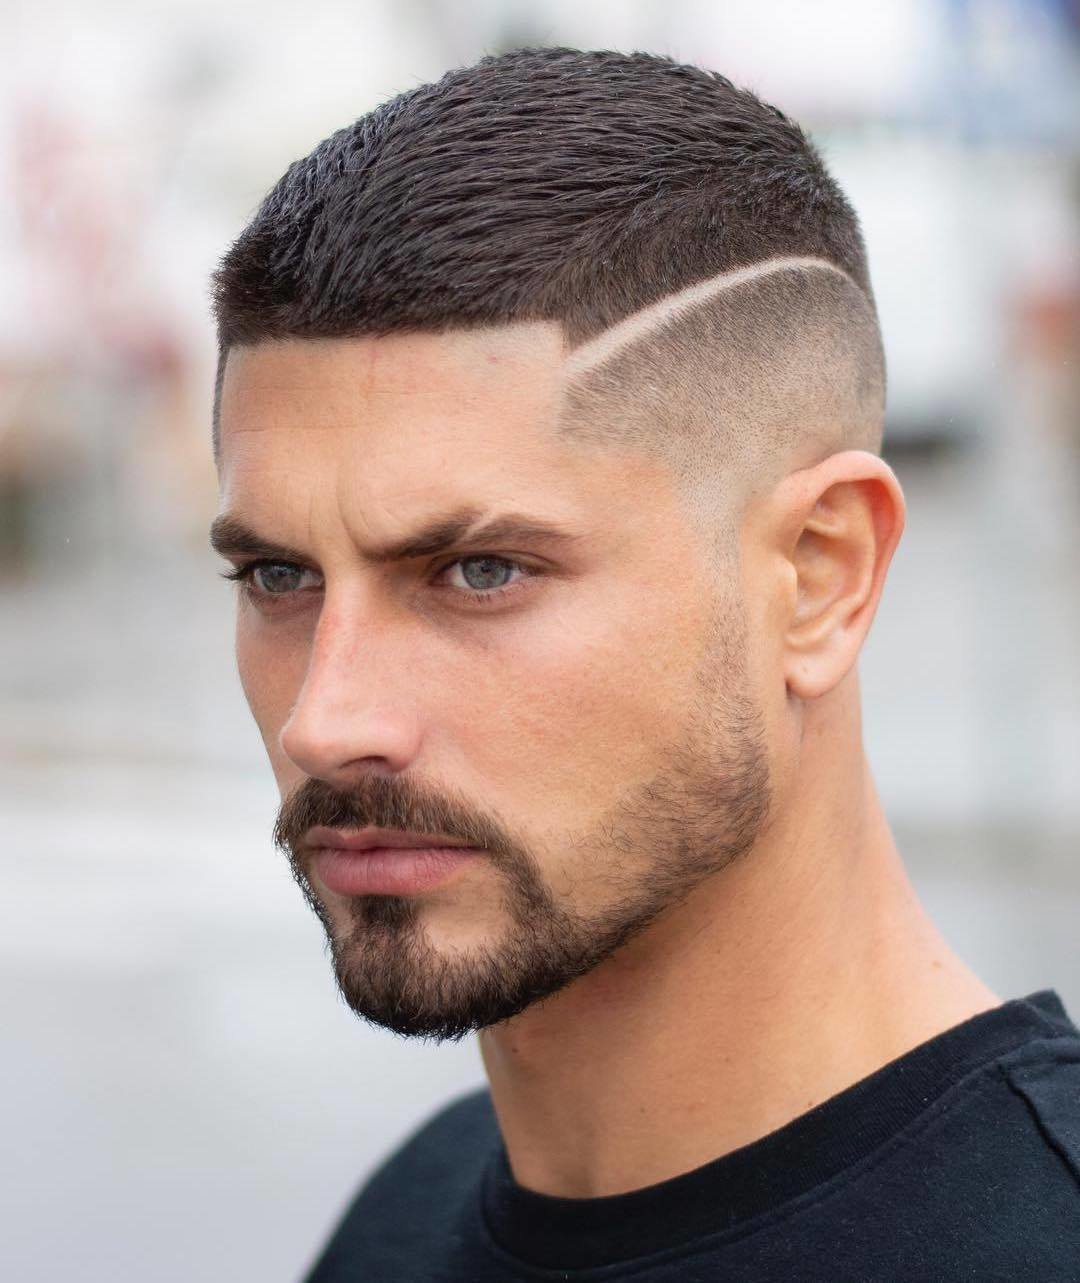 The Best Haircut Inspiration Men S Hairstyles Trends Tips And More Pictures